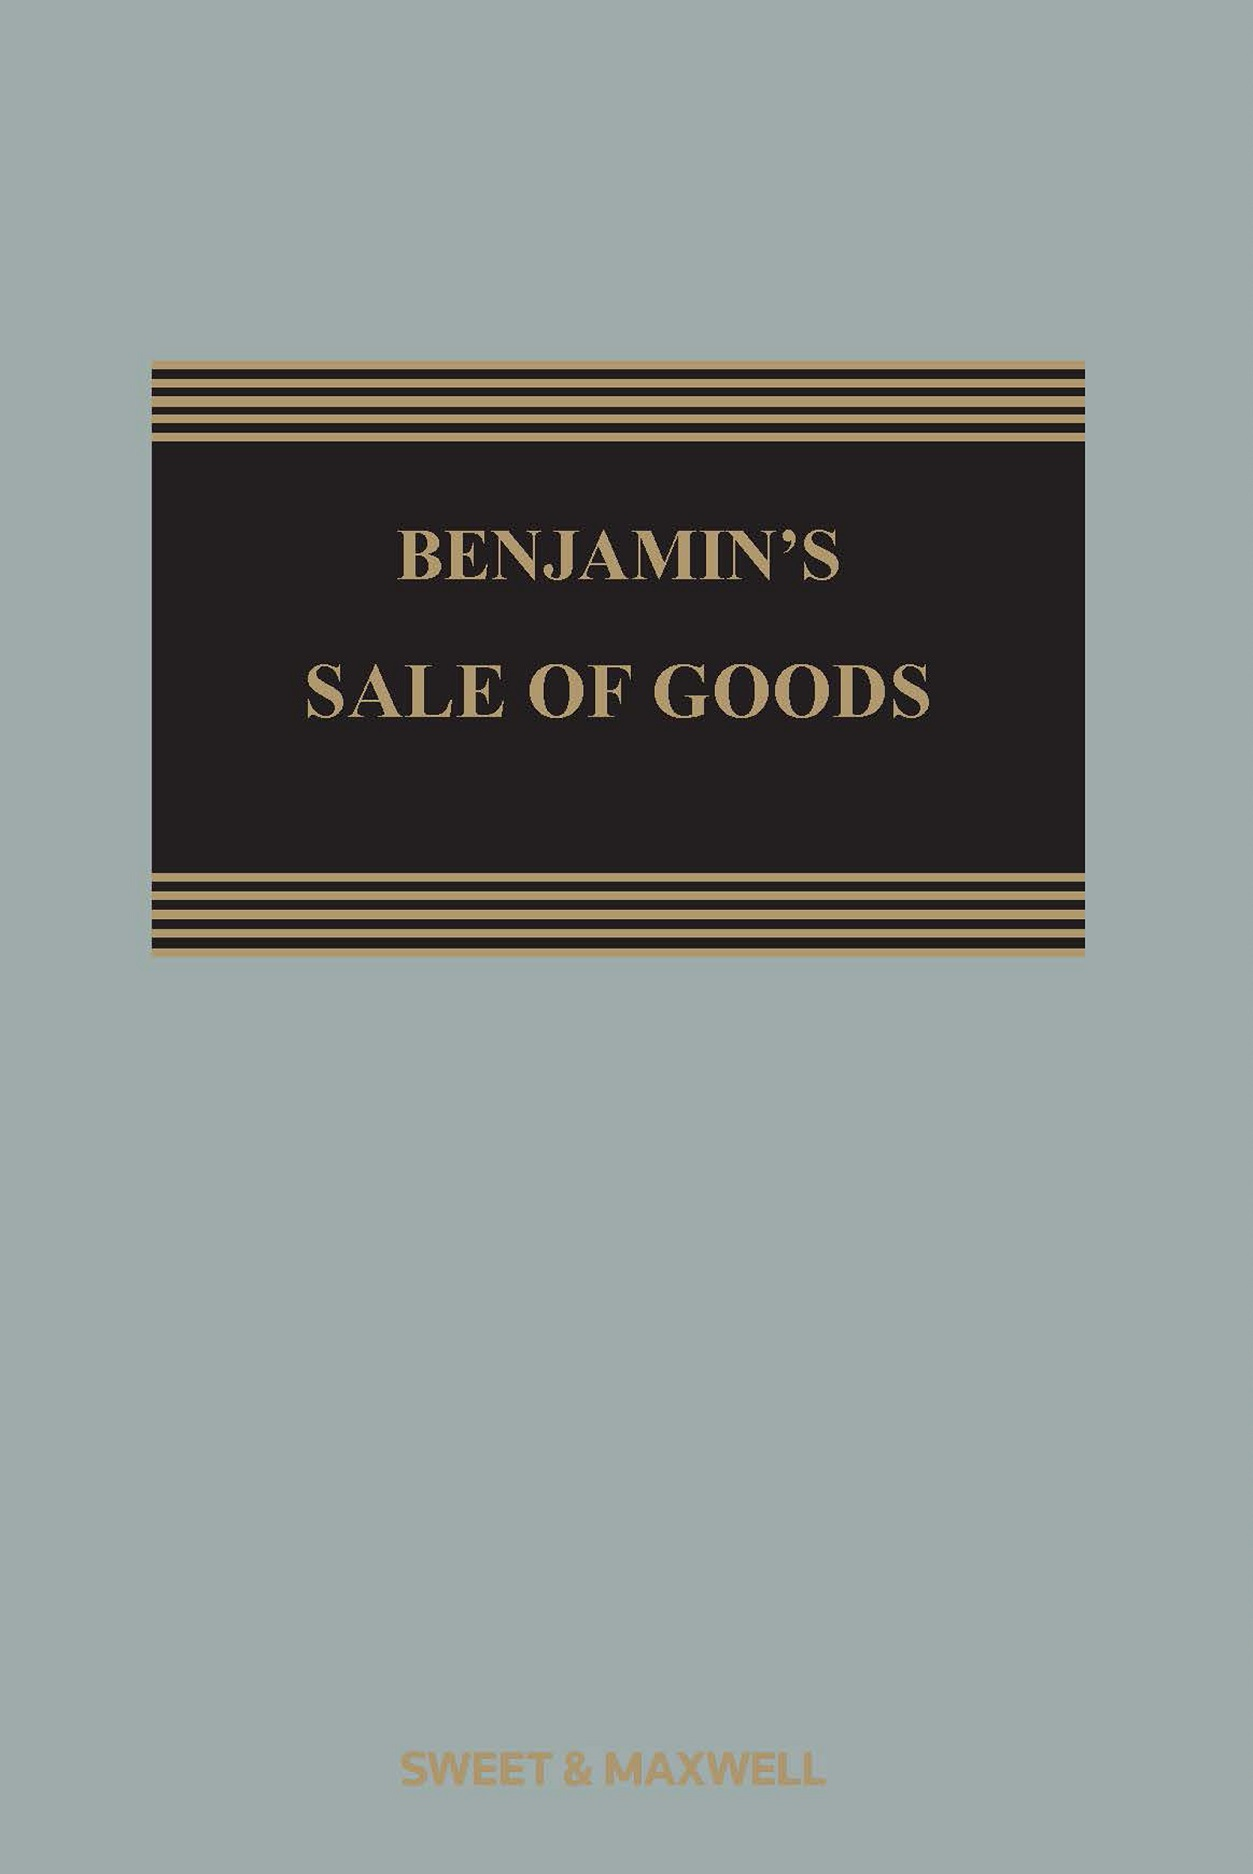 Benjamin's Sale of Goods 11th Edition